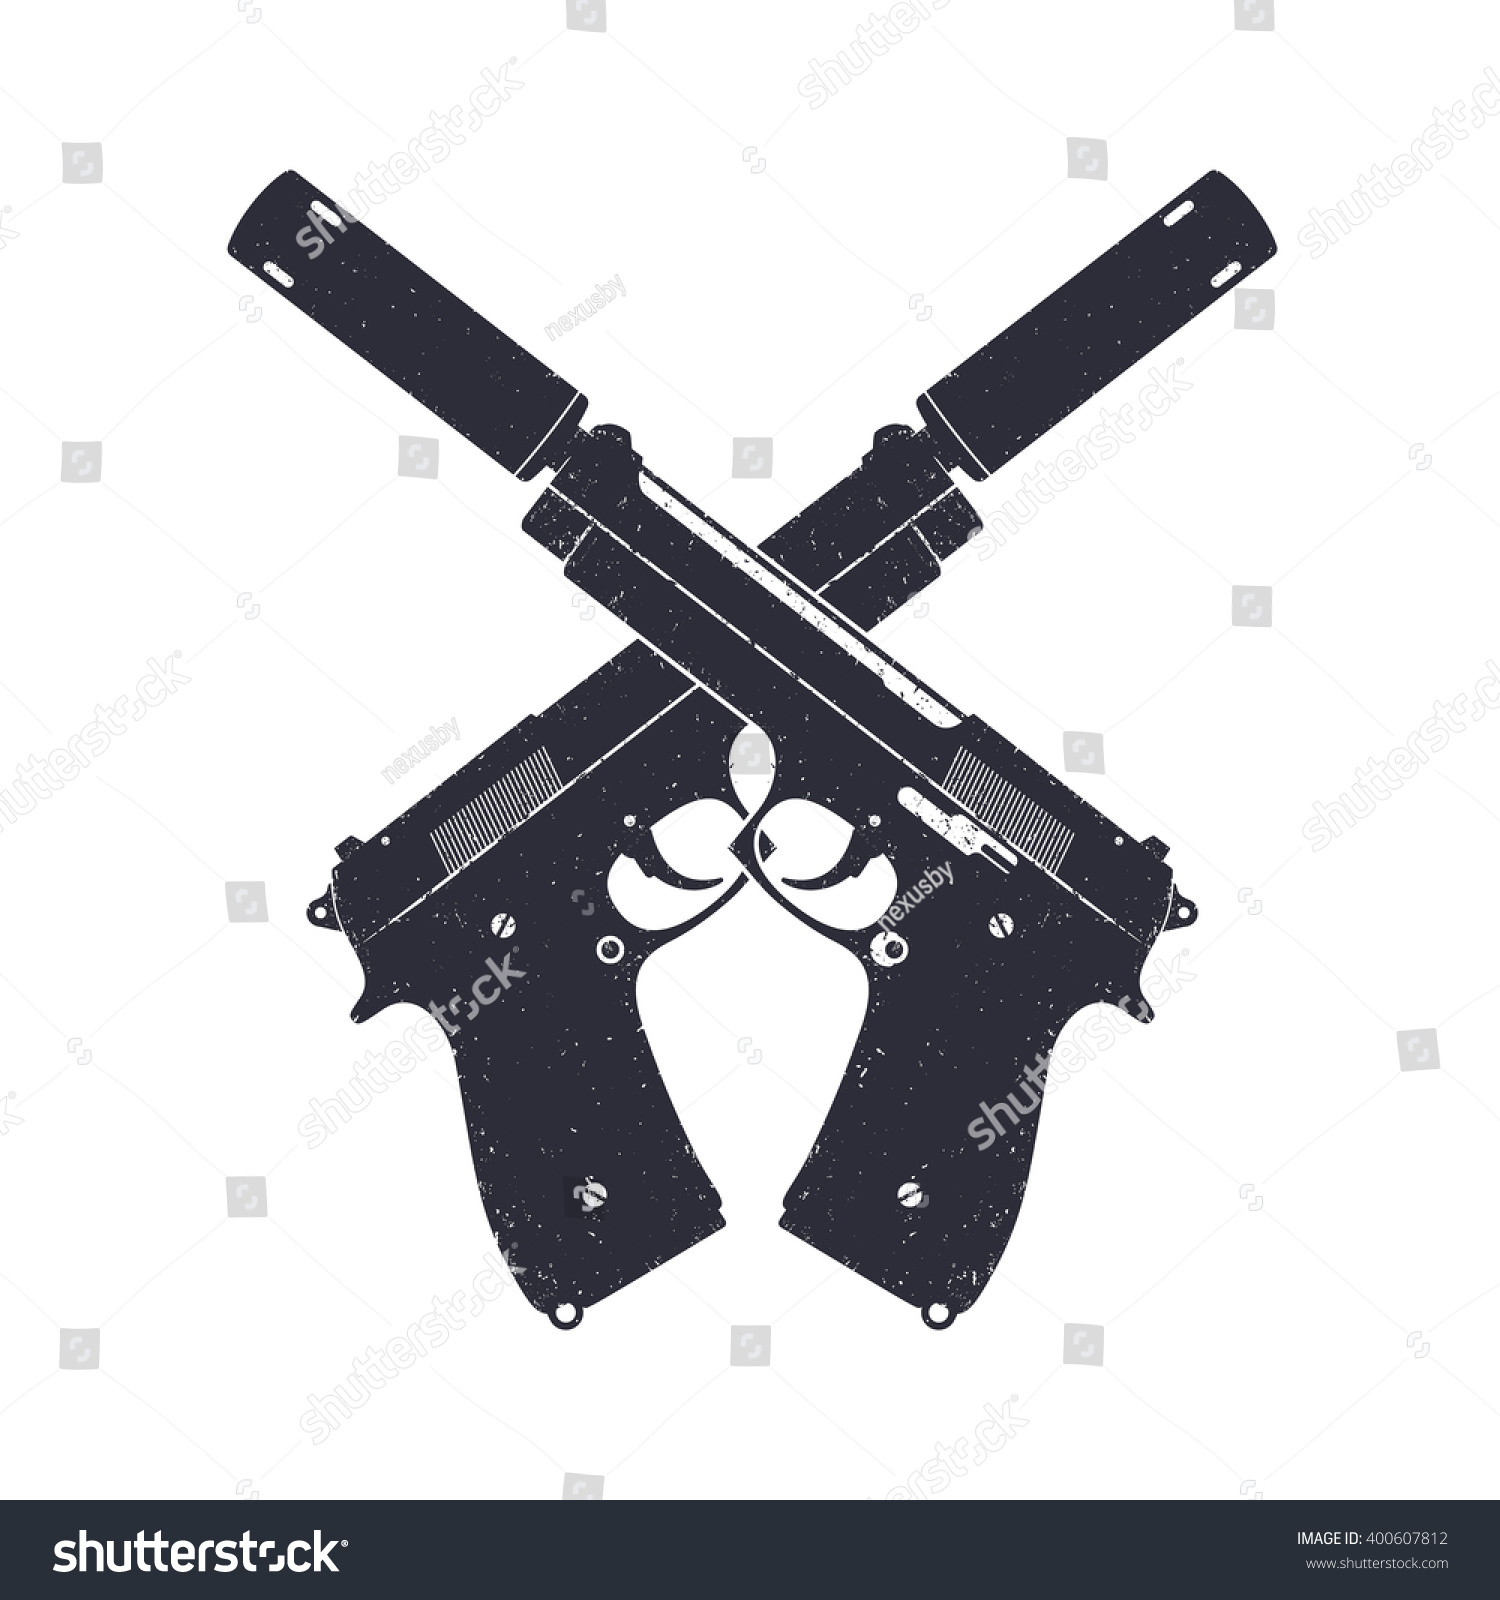 crossed modern pistols silencers two handguns stock vector